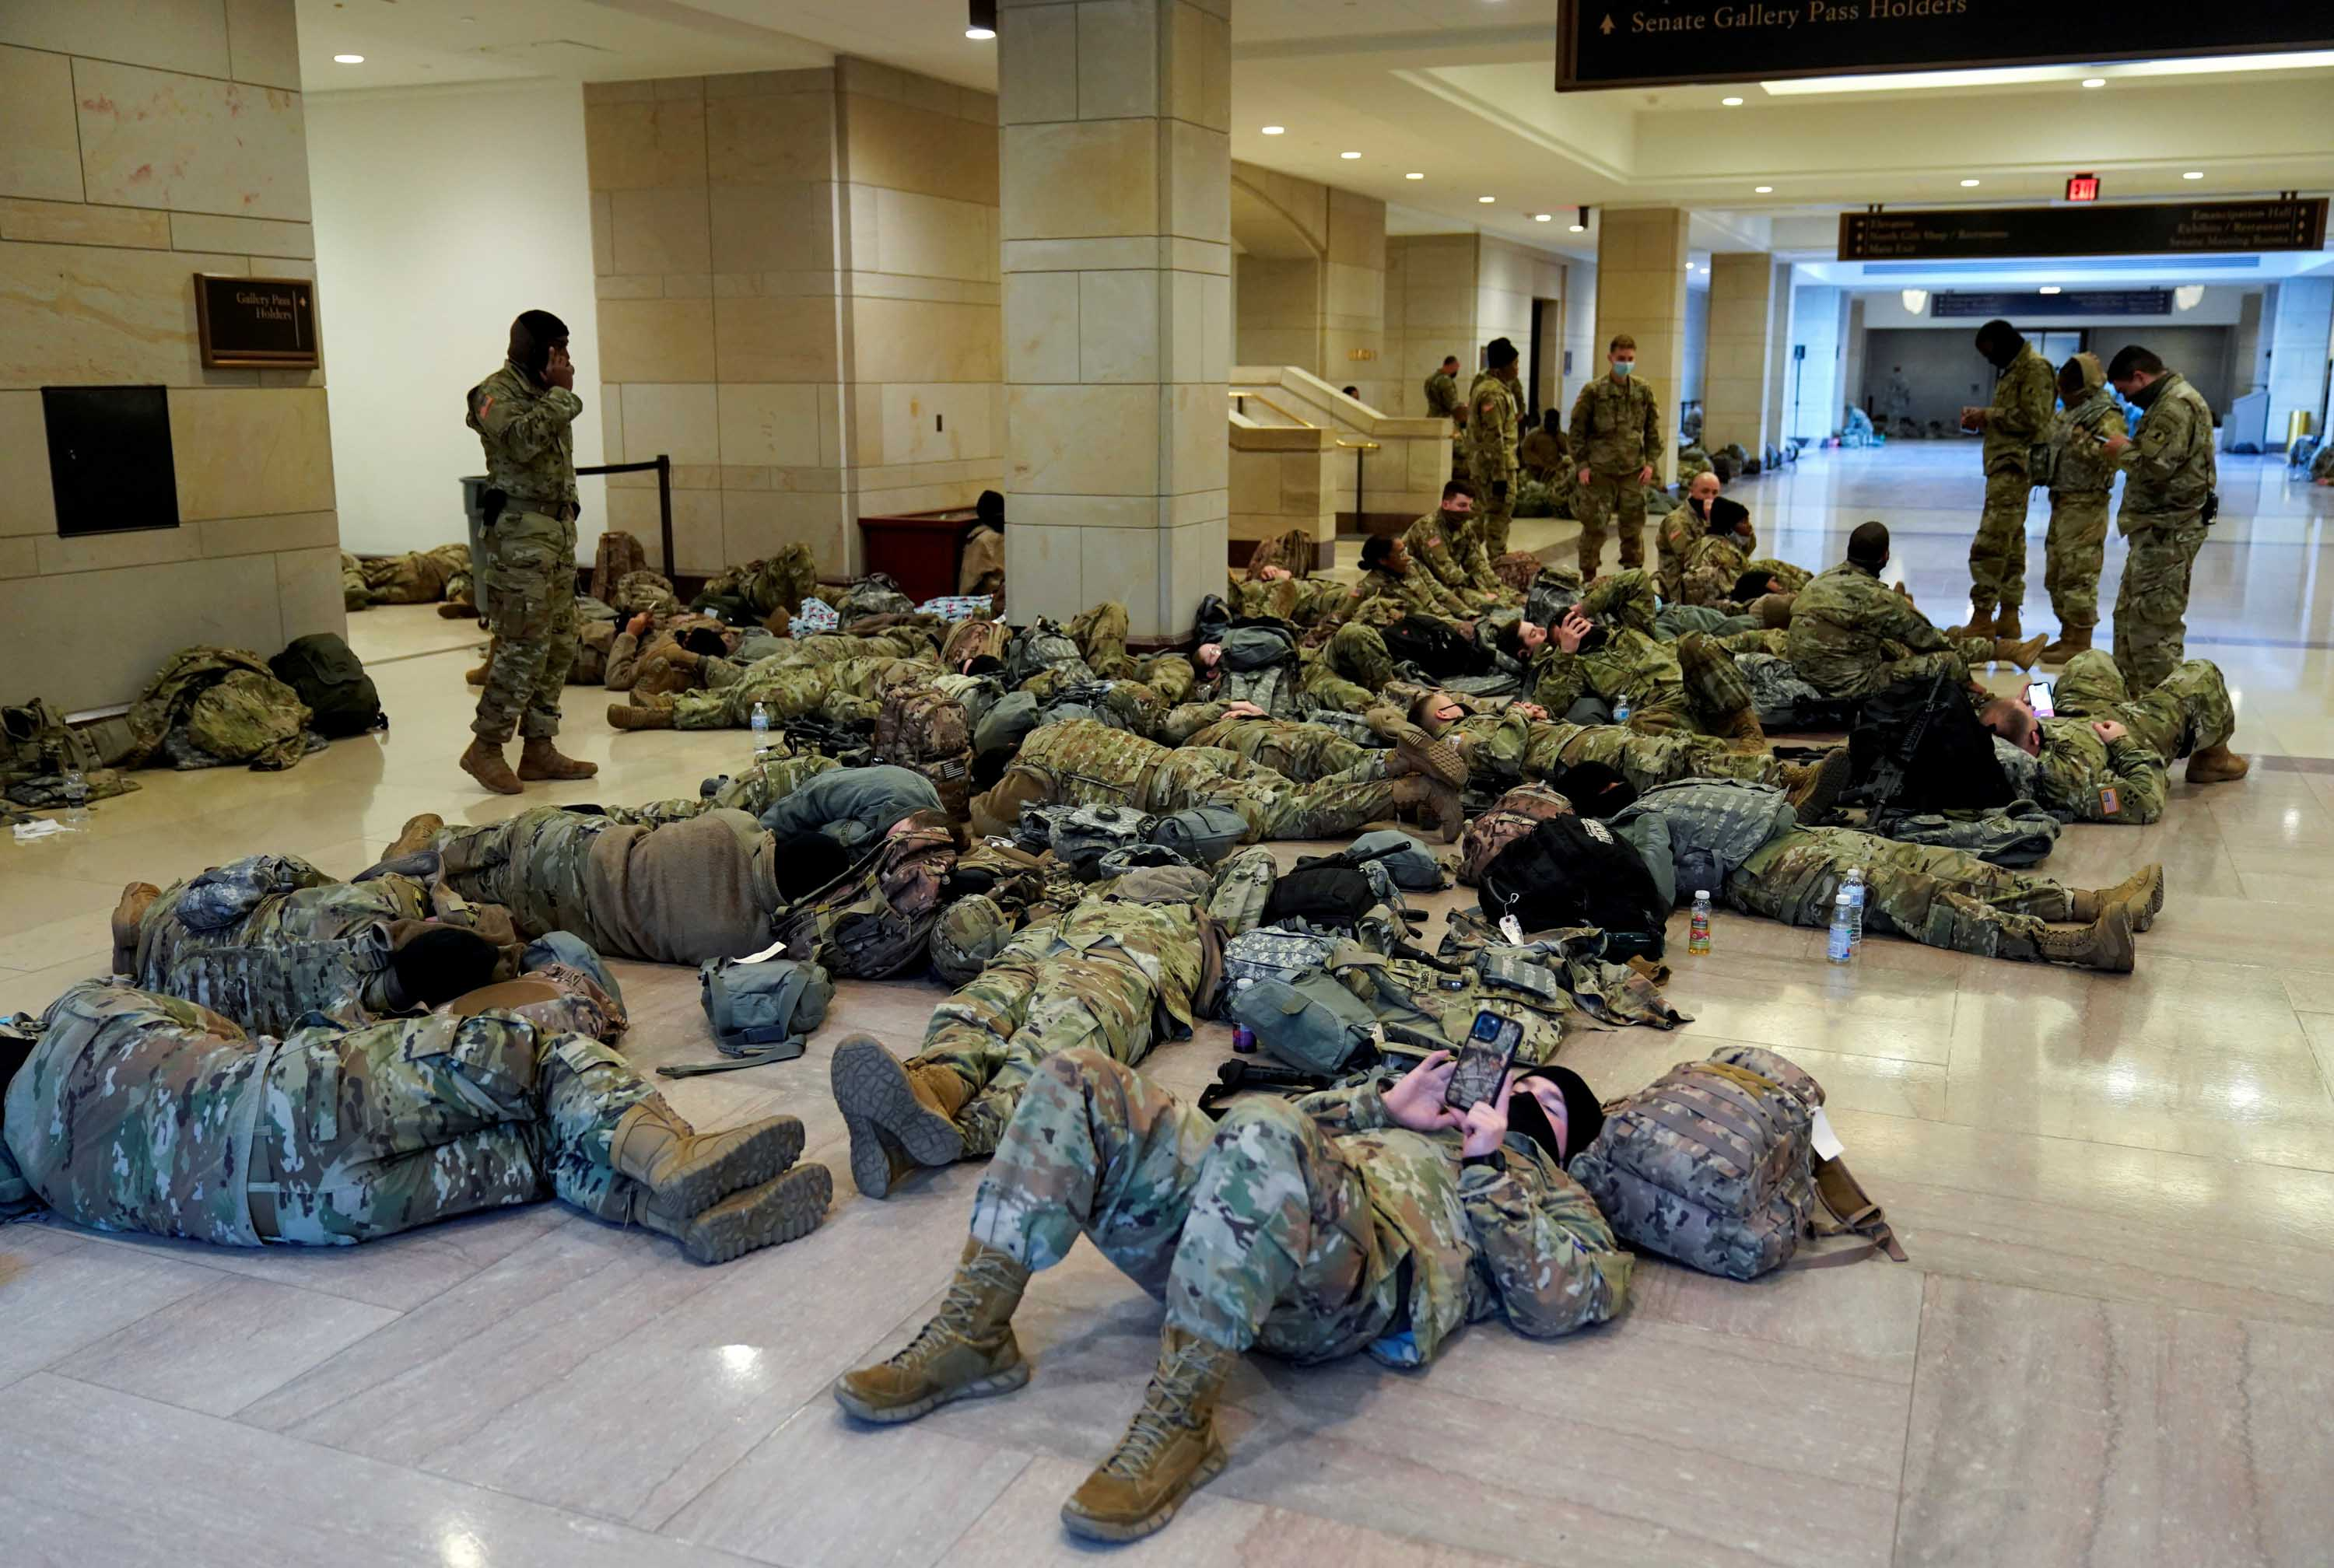 National Guard members rest in the Capitol Vistor's Center, ahead of the debate on impeachment against US President Trump on January 13.